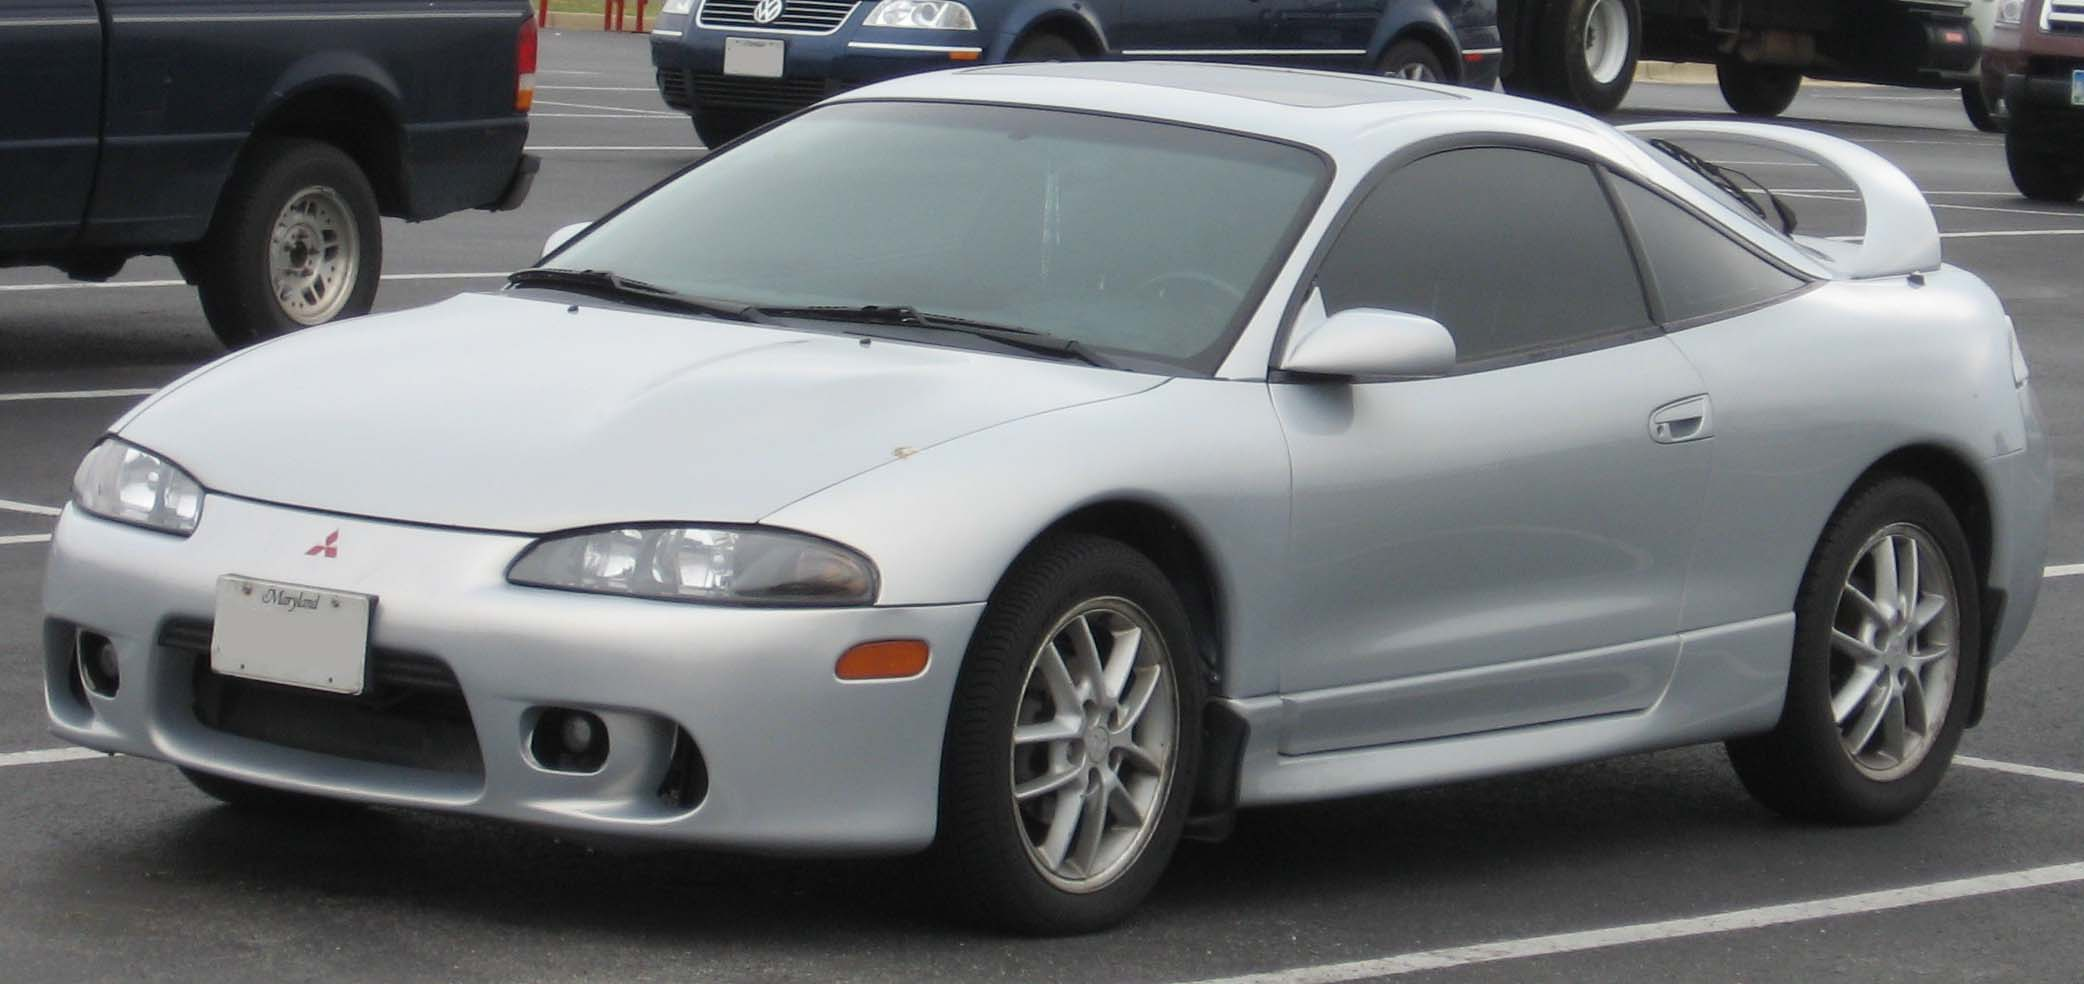 2nd Mitsubishi Eclipse Desktop Backgrounds